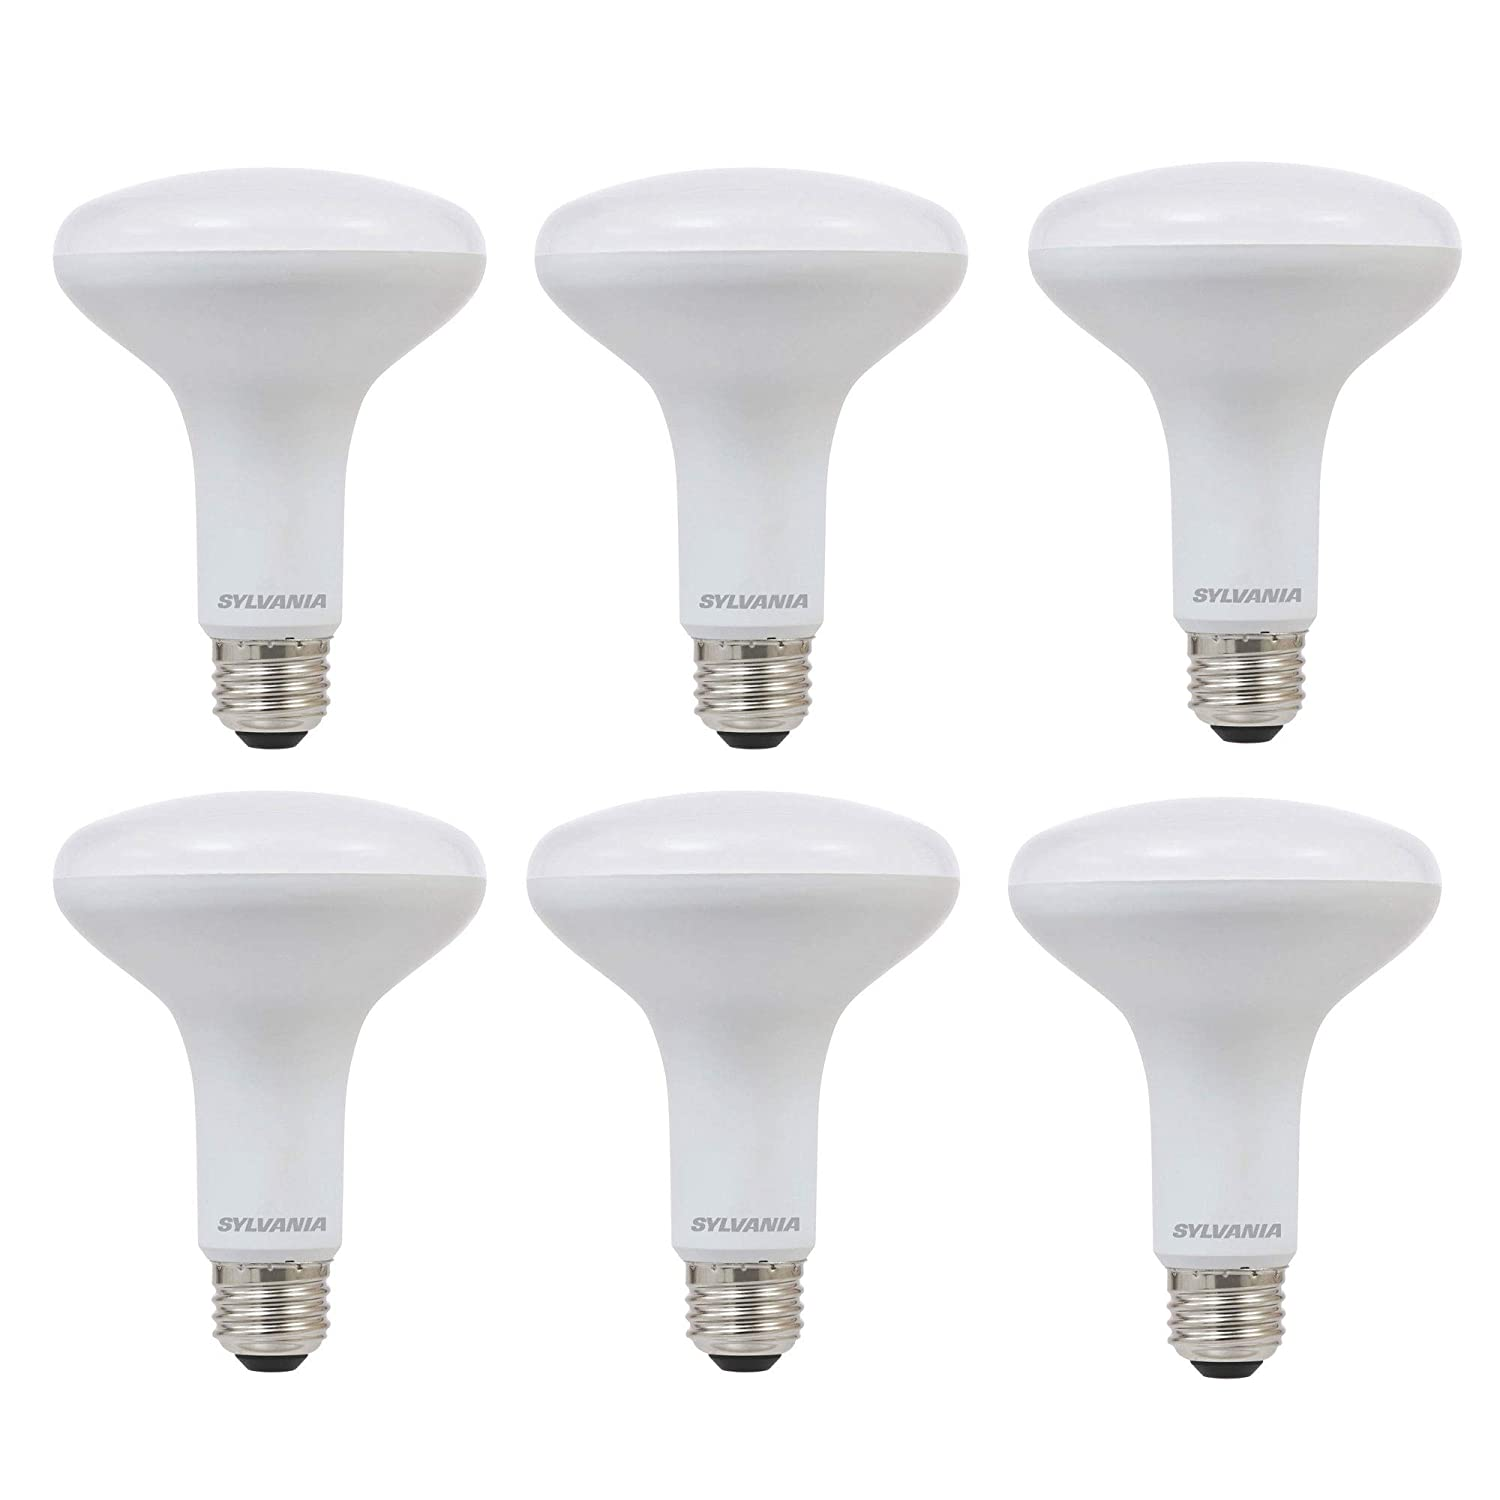 Sylvania BR30 65W Energy Saving Dimmable Soft White 2700K LED Flood Light Bulb (6 Pack) - - Amazon.com